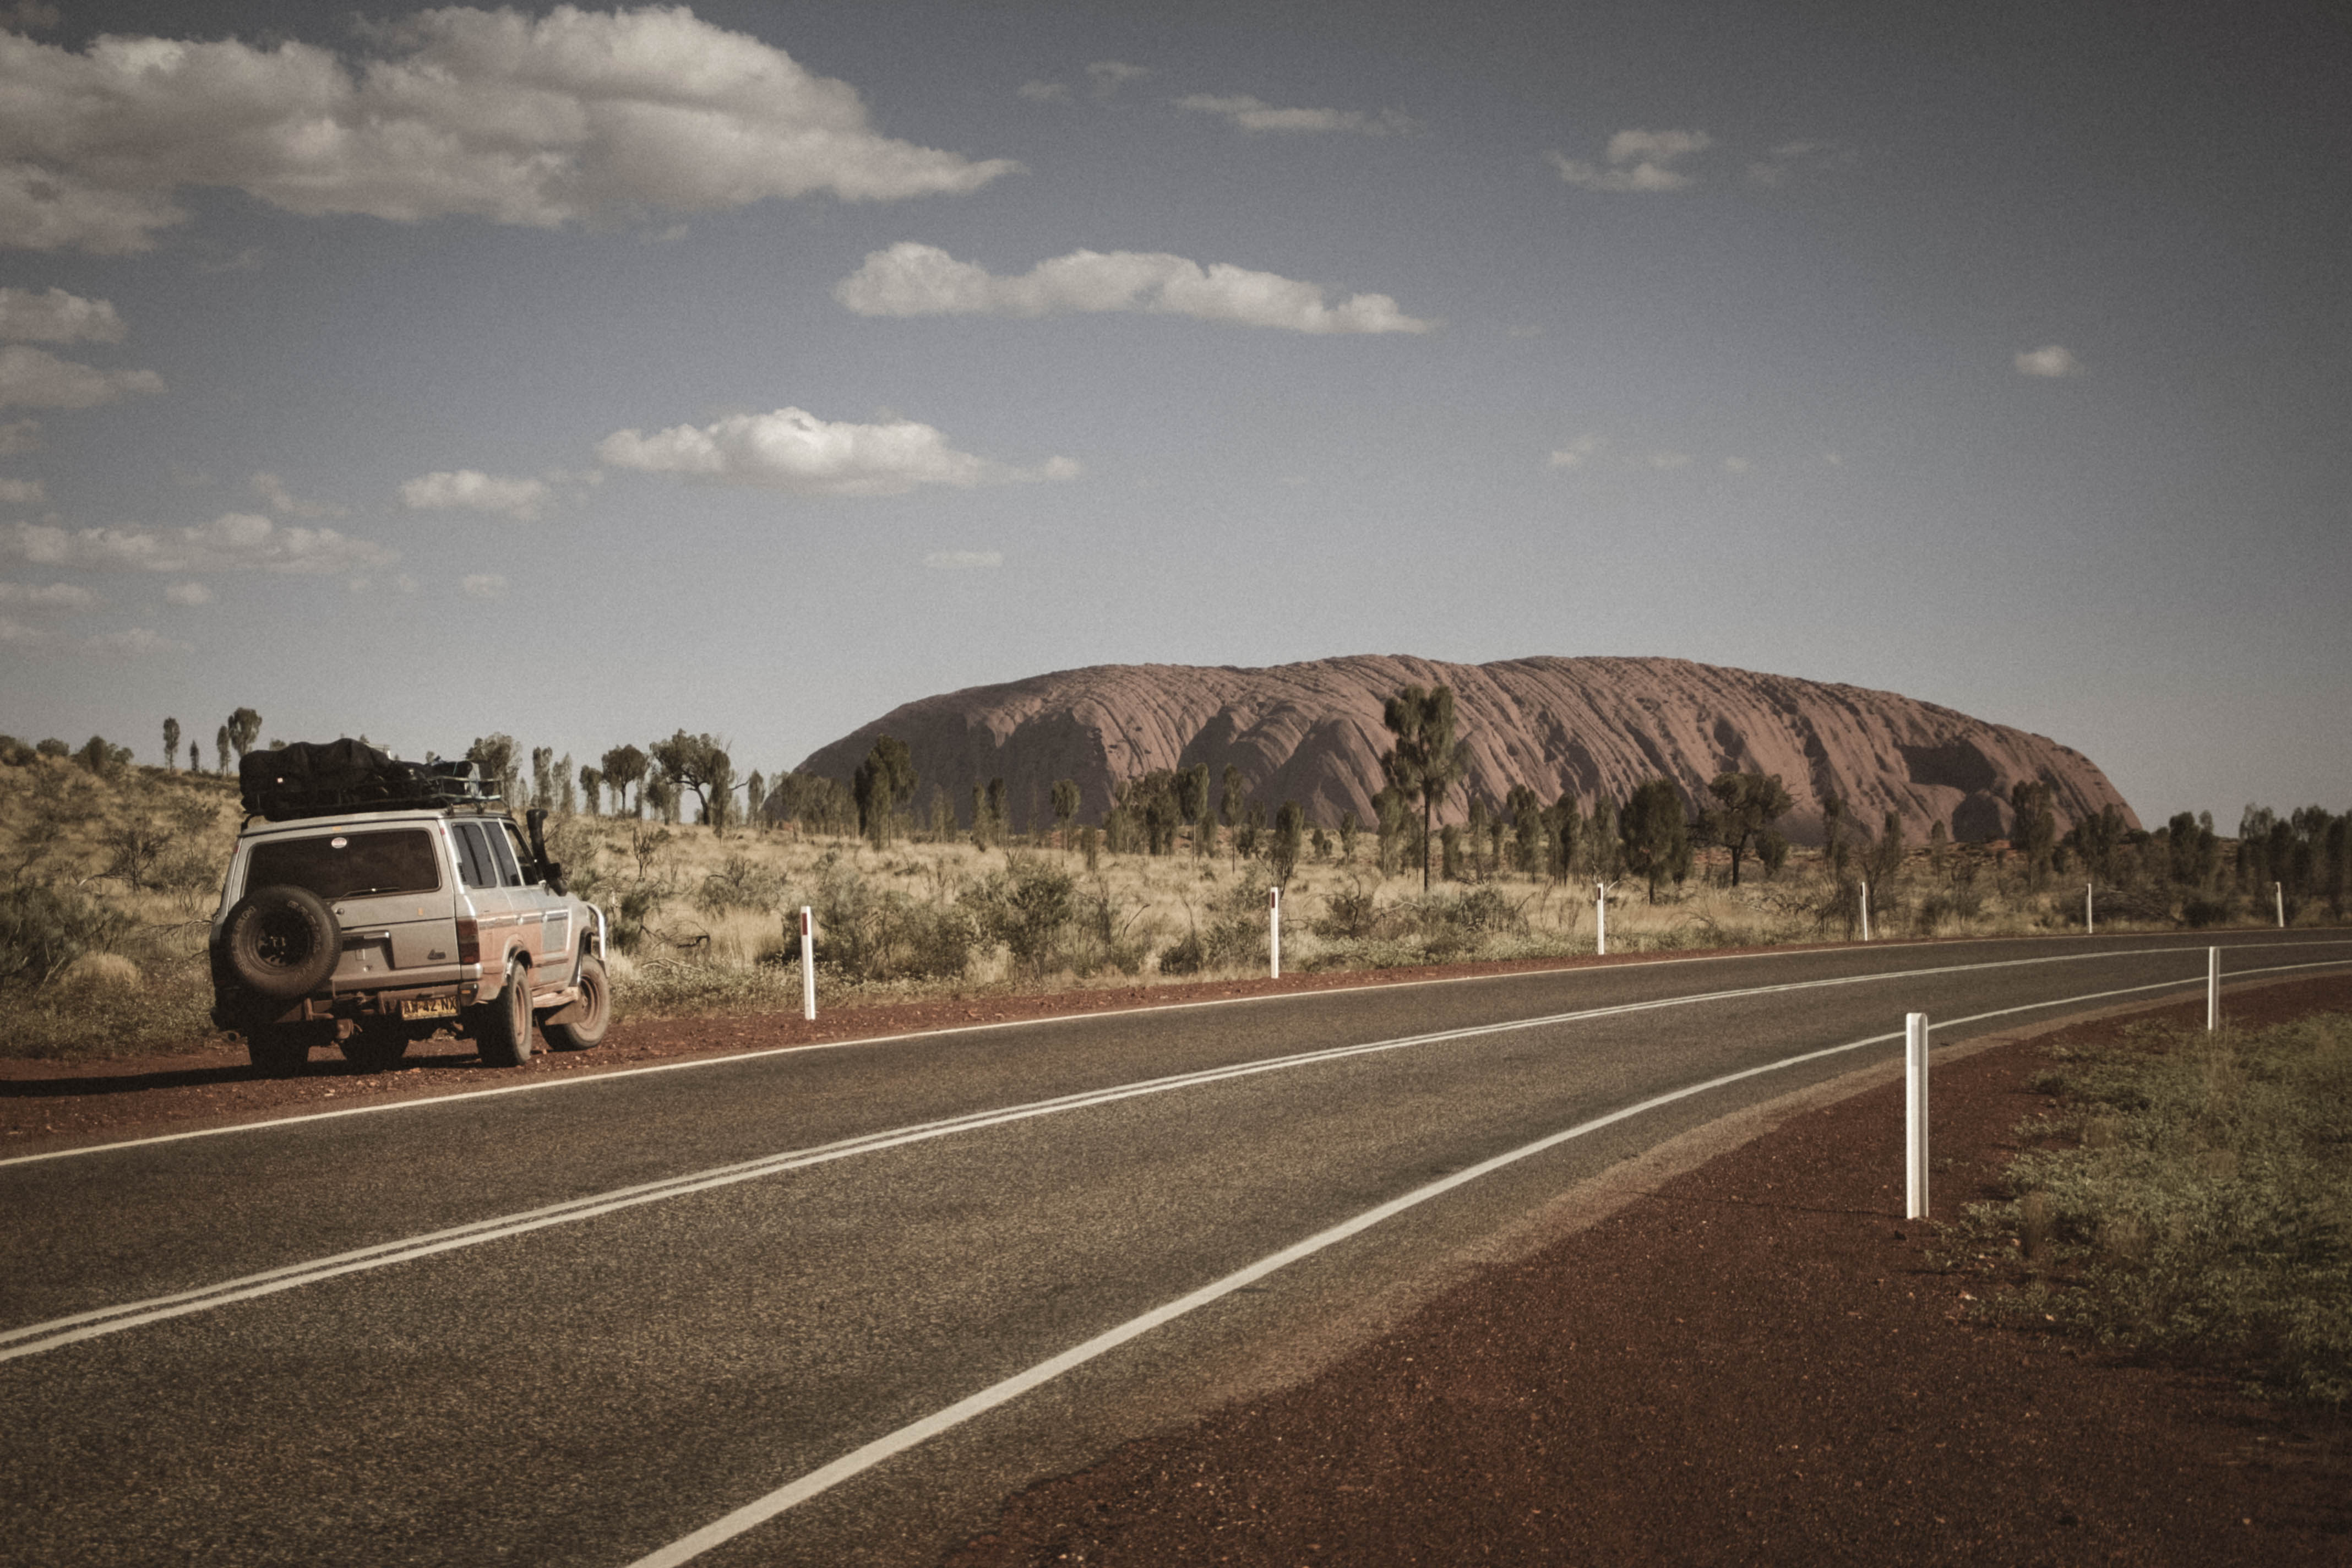 Camper car in australia on the side of a road.